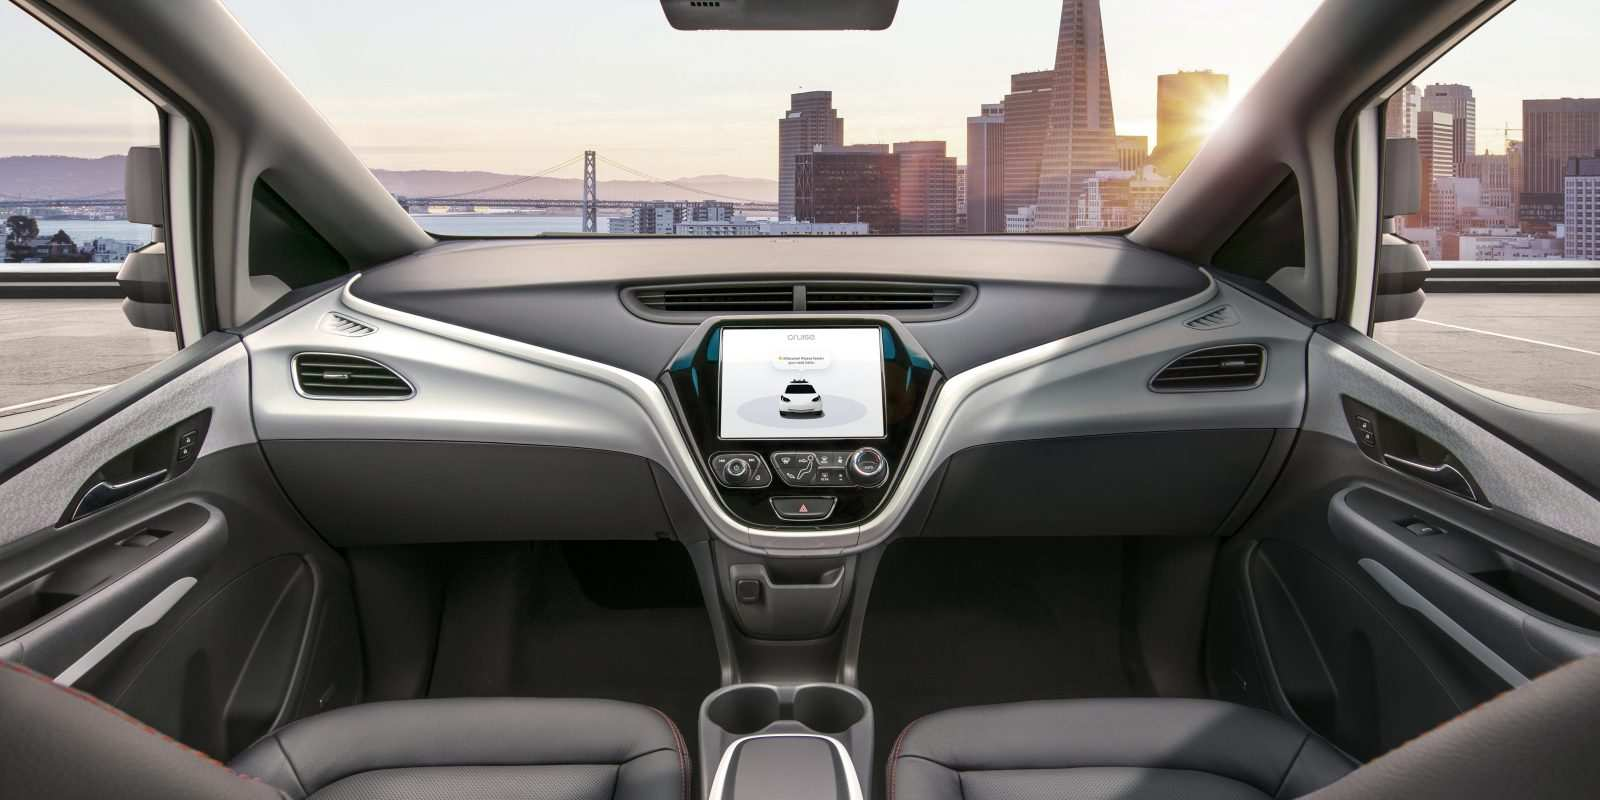 19 All New 2020 Chevrolet Bolt Ev Rumors for 2020 Chevrolet Bolt Ev